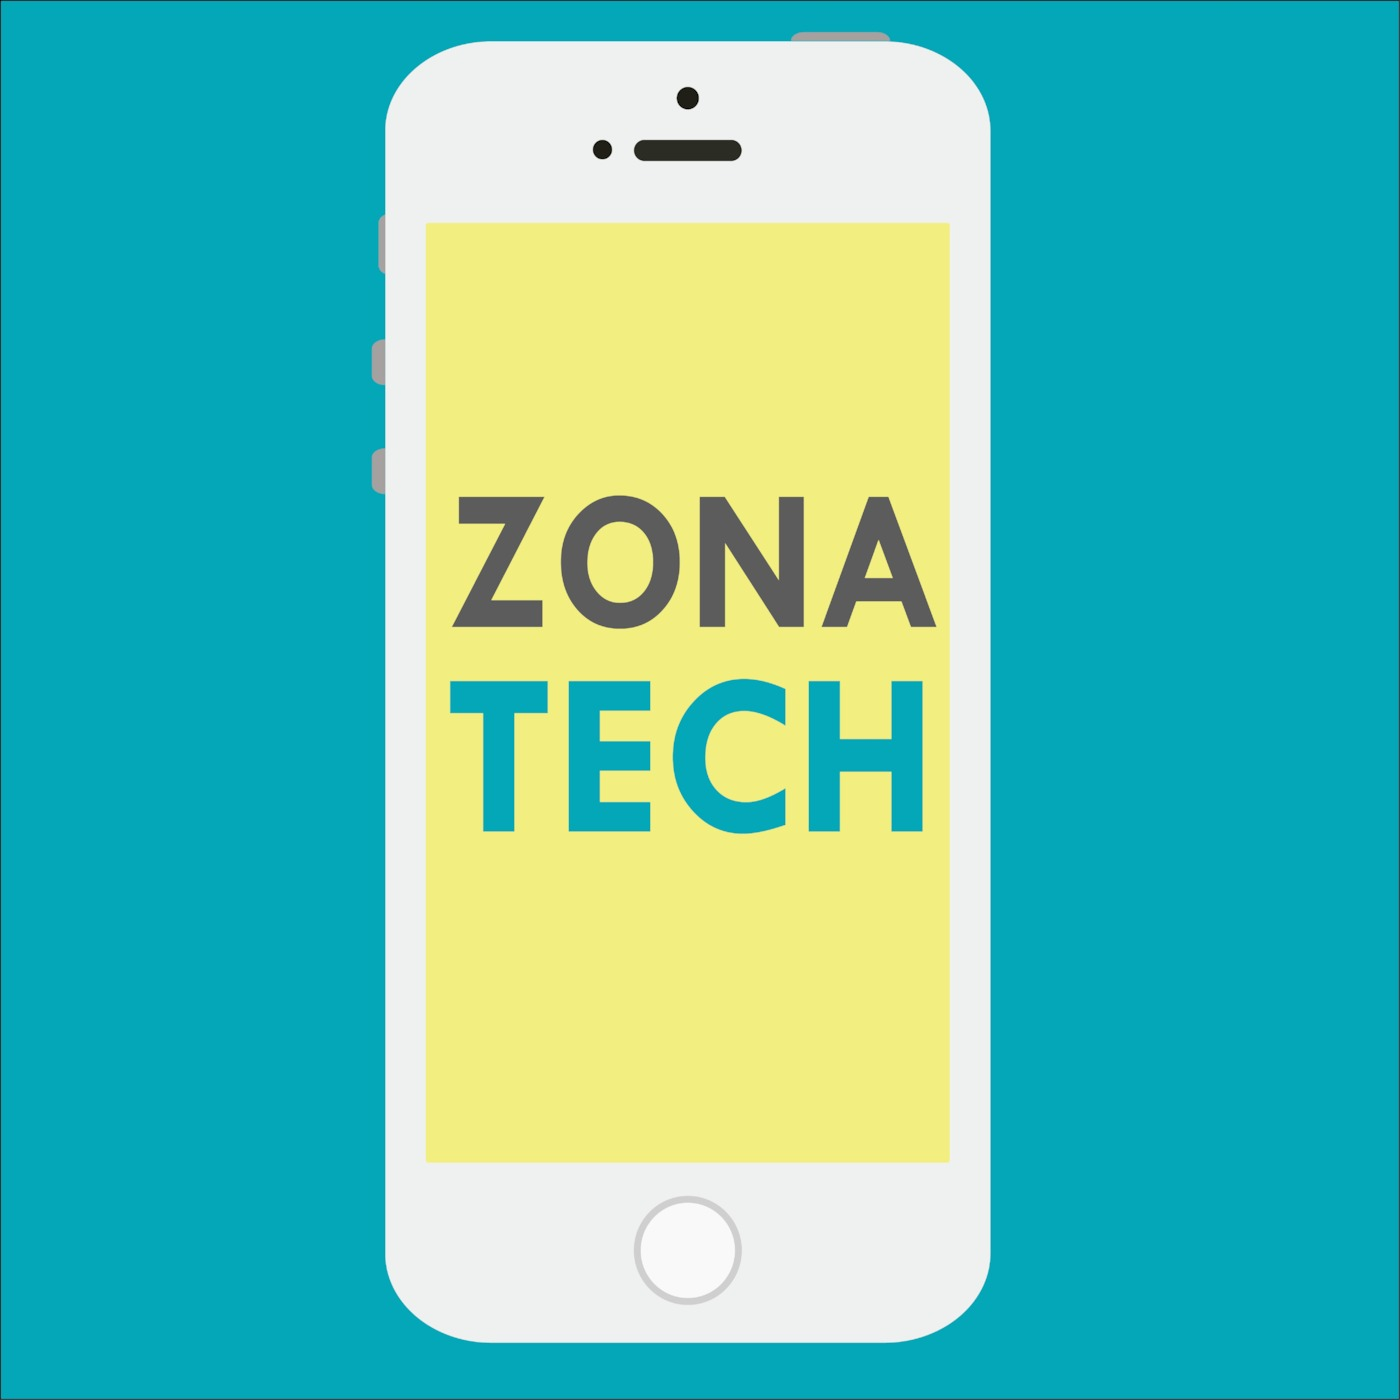 Zona Tech Podcast